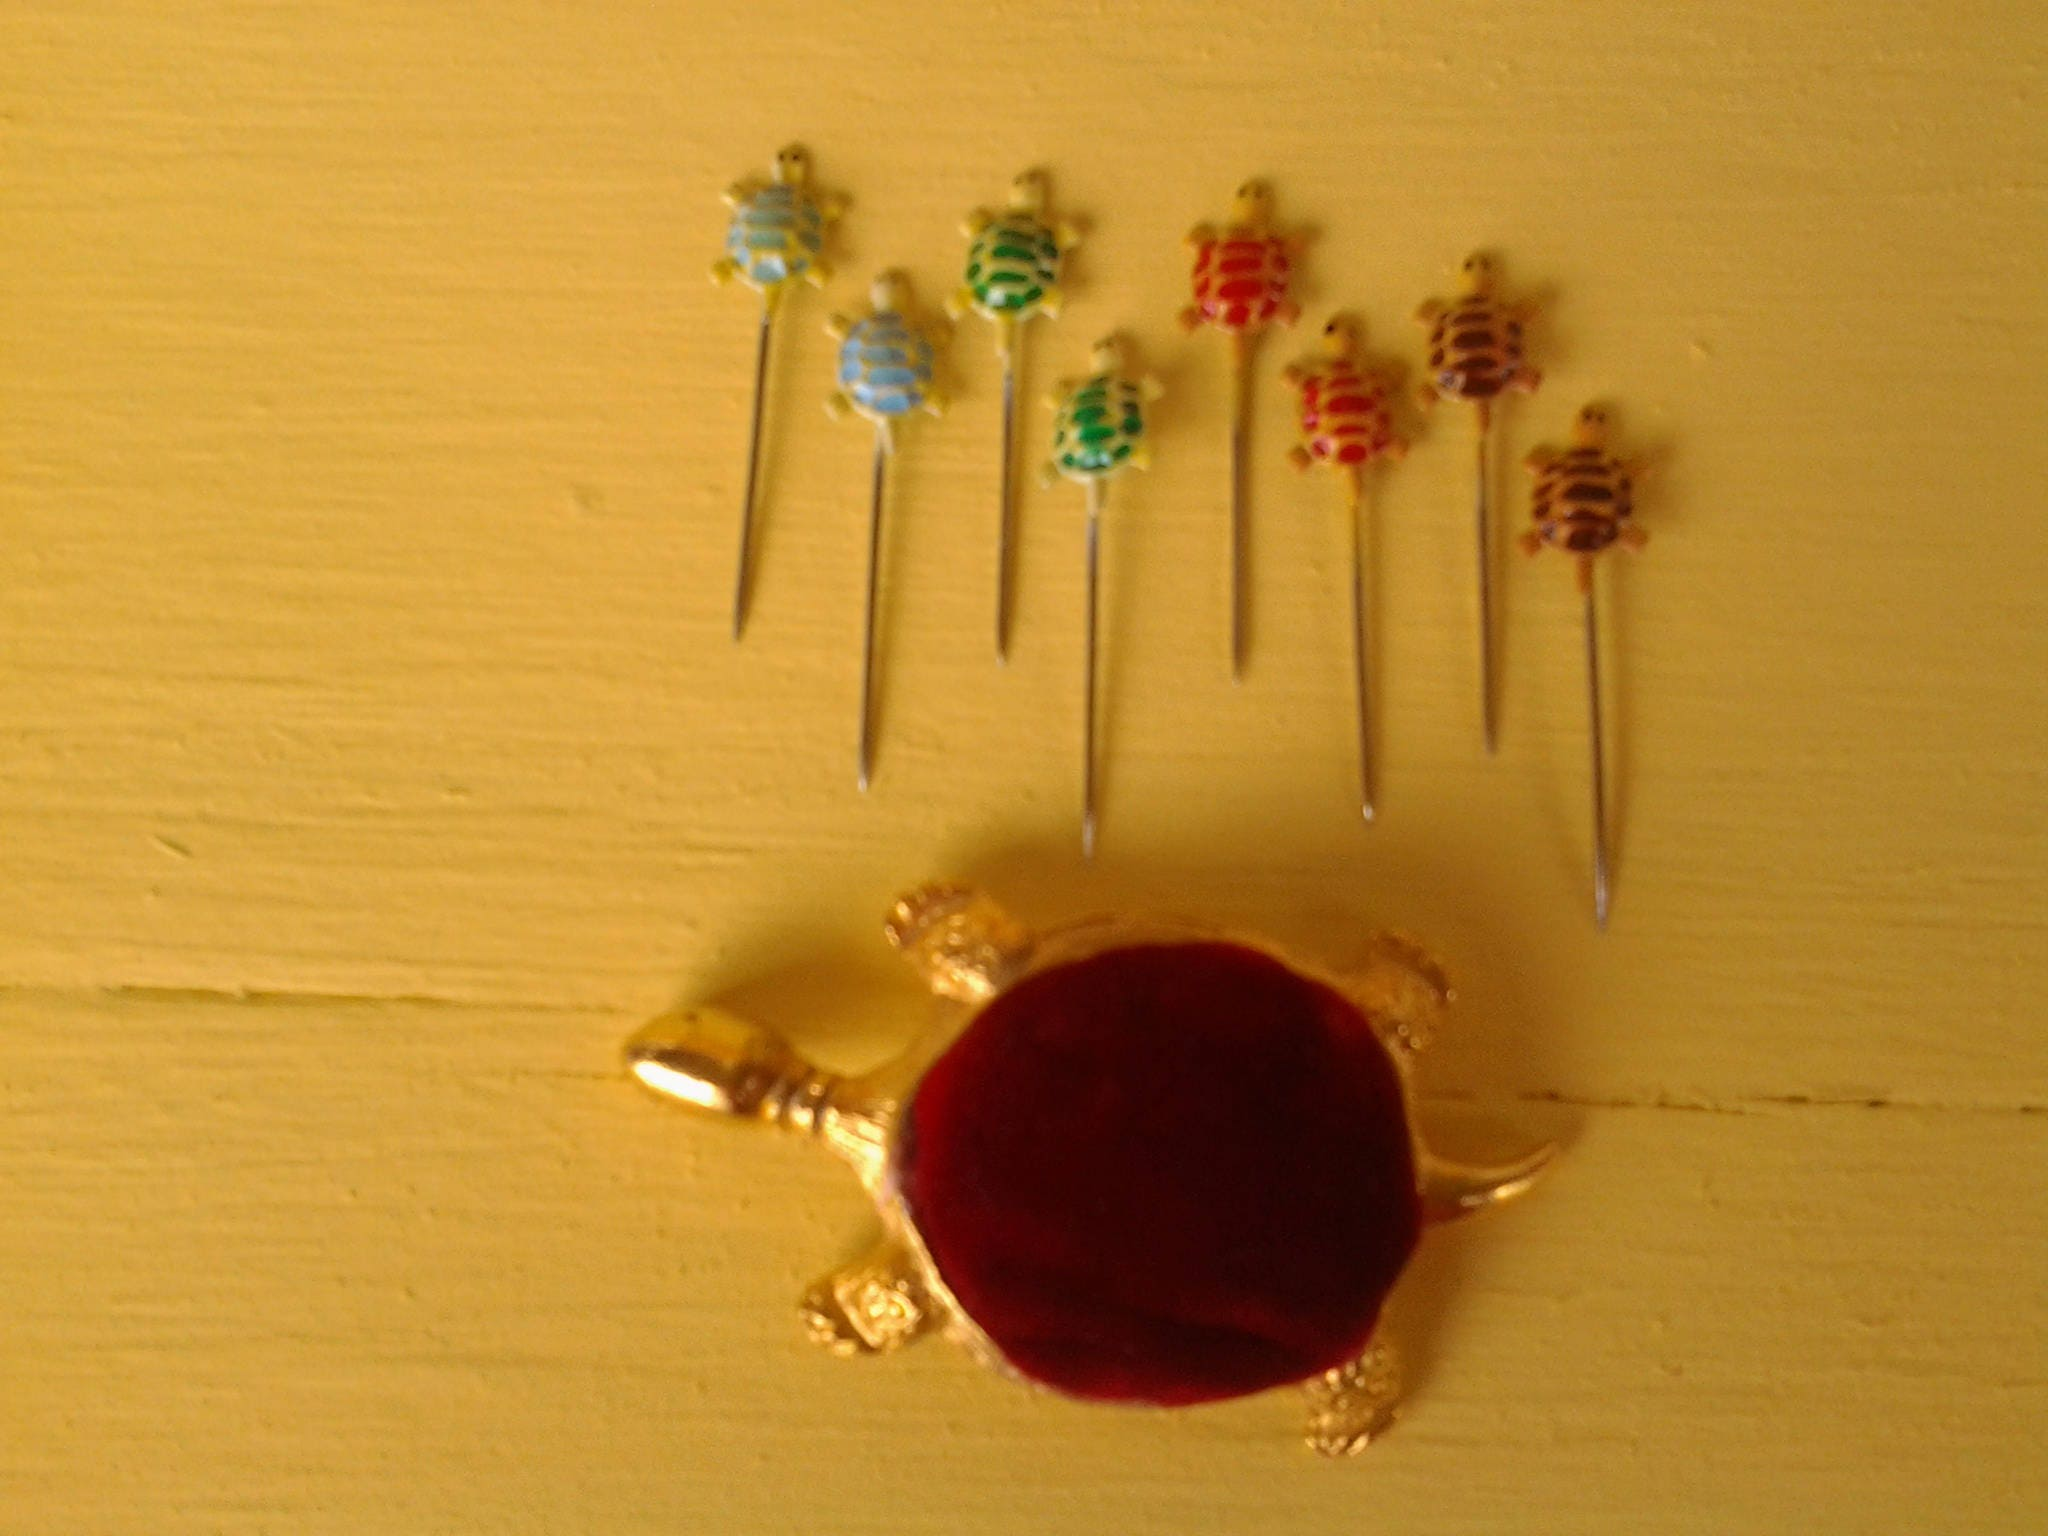 Stick pins for crafts - Sold By Noneedfornew